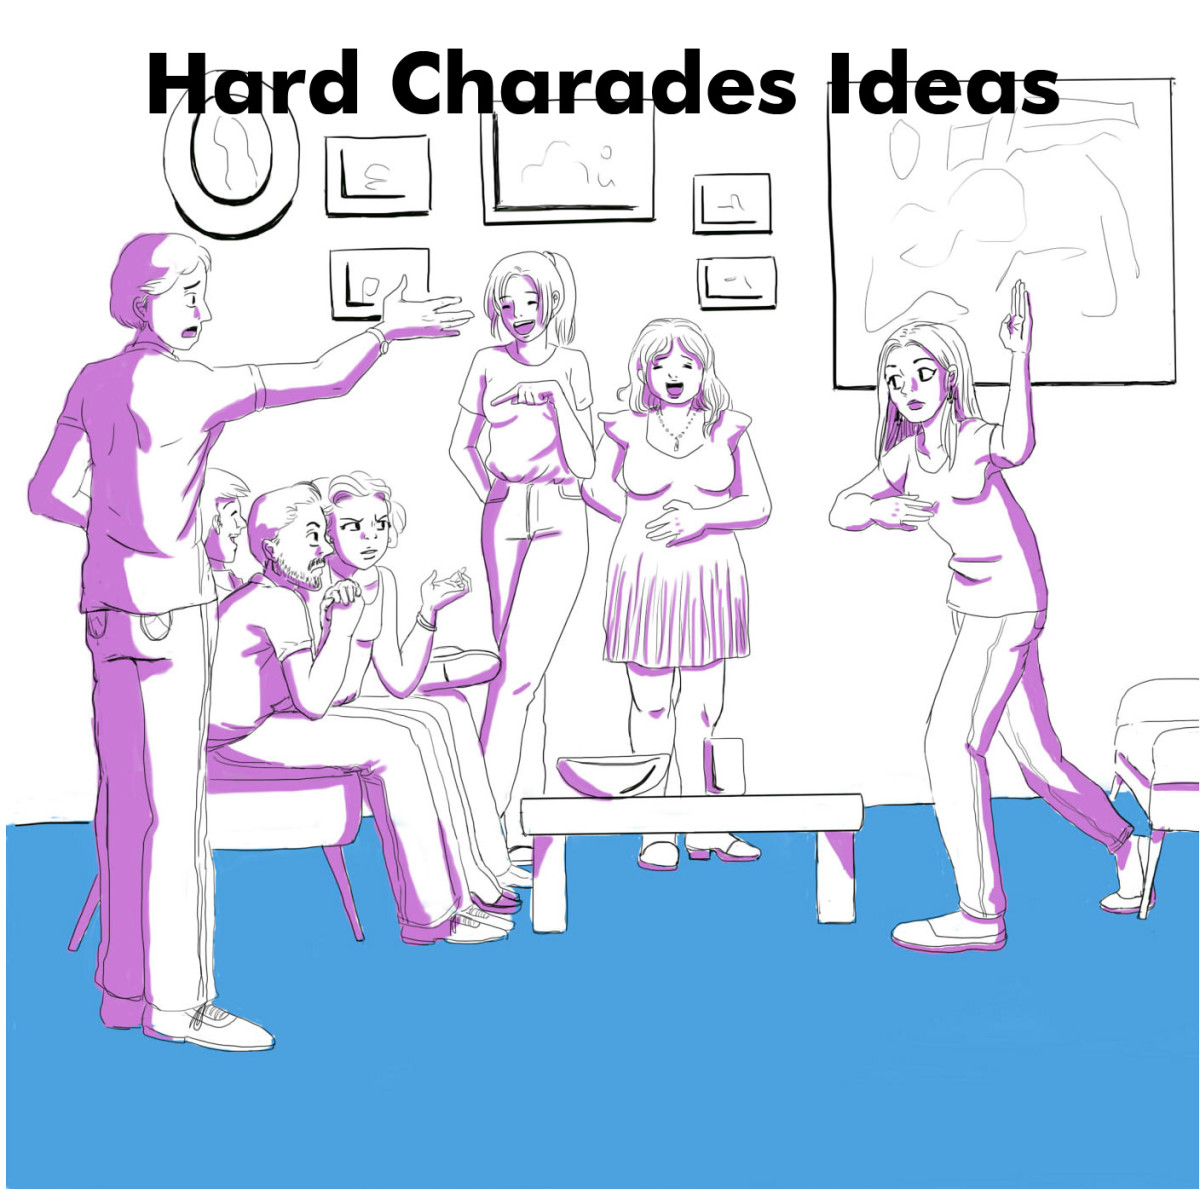 Hard Charades Ideas: Movies, TV Shows, Books, and More